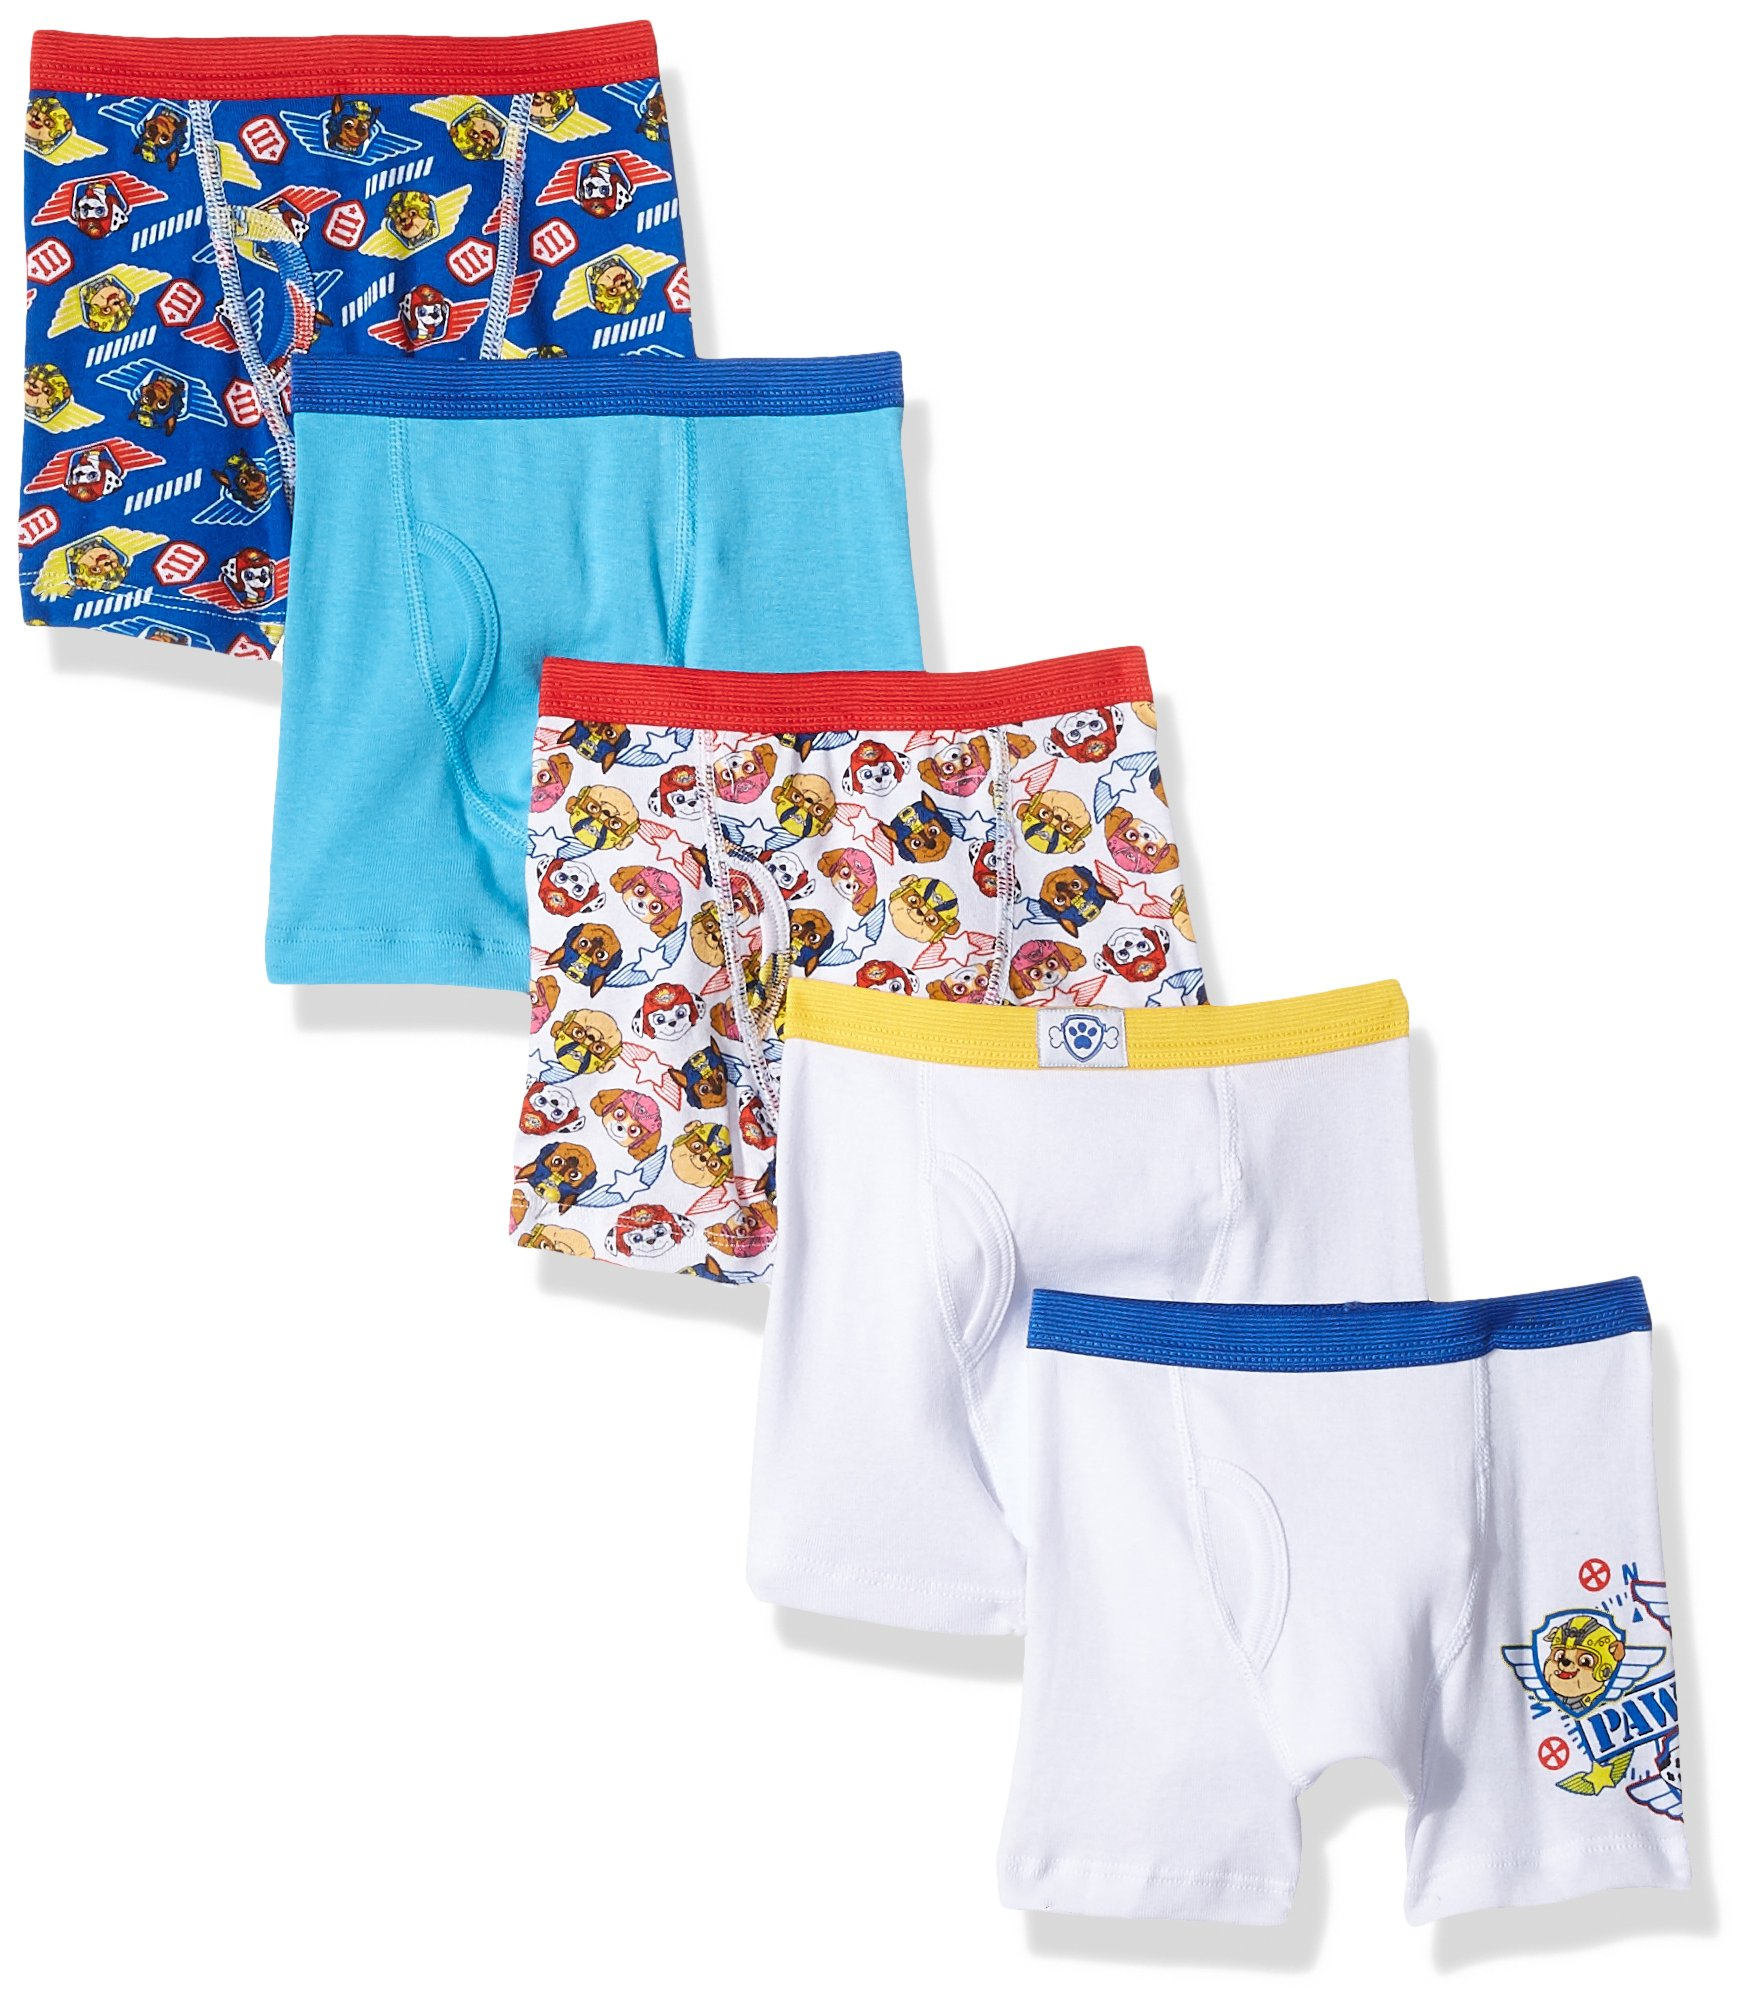 Nickelodeon Toddler Boys' Paw Patrol 5 Pack Boxer Brief, Assorted Prints, 4T